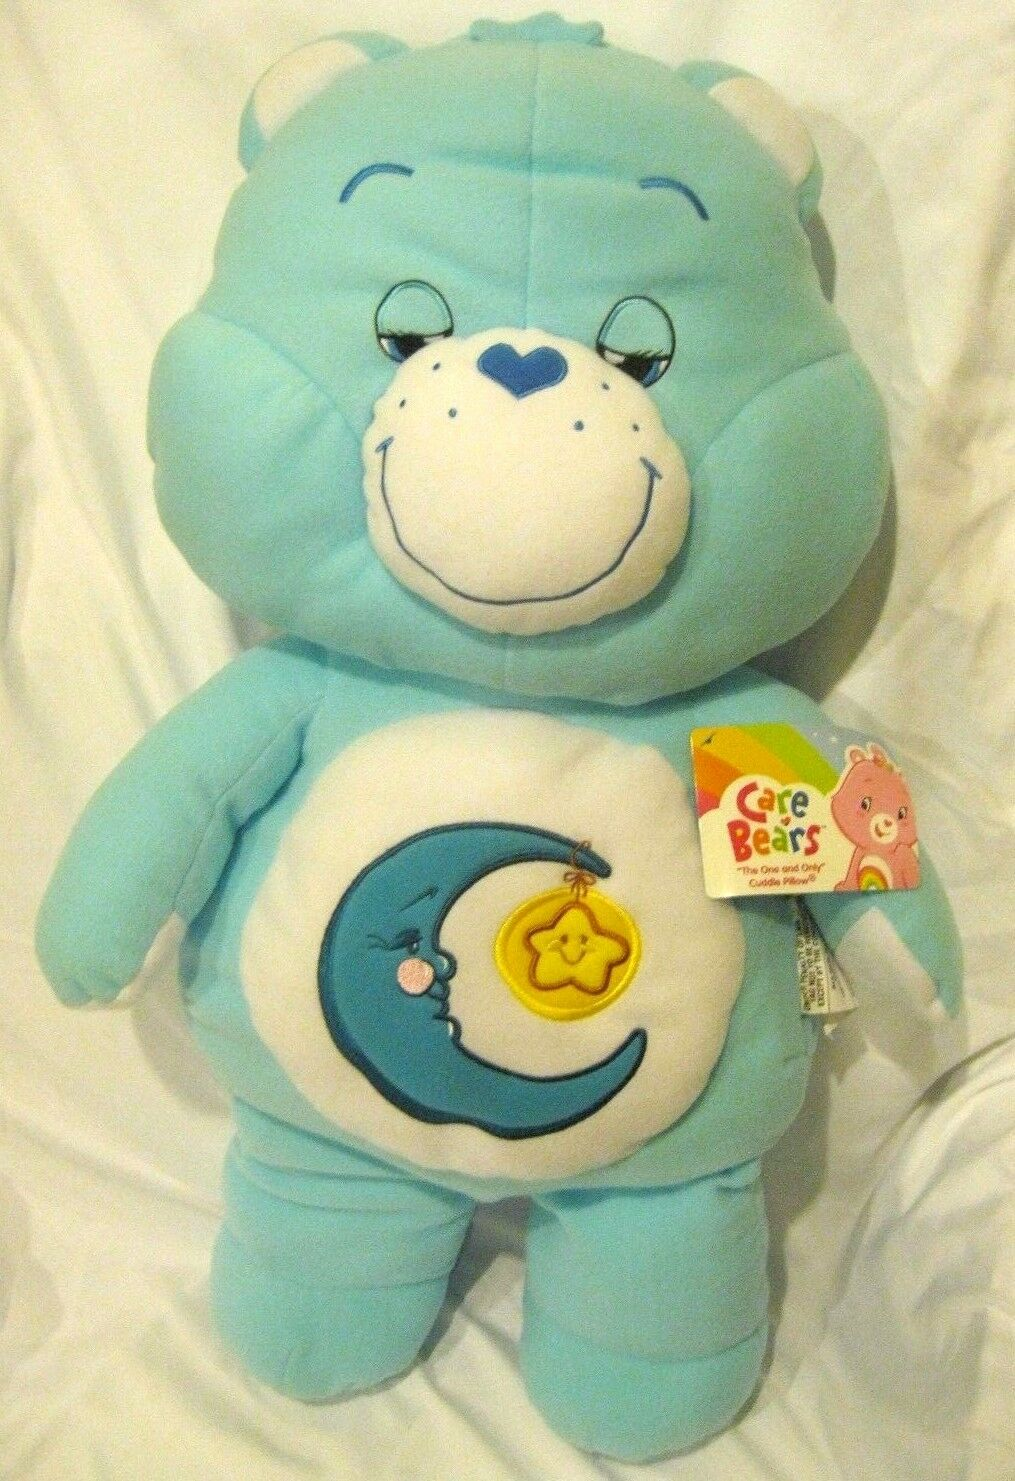 Care Bears Blau Moon and Star 27  Soft Plush Pillow Pal Doll Plush-Brand New